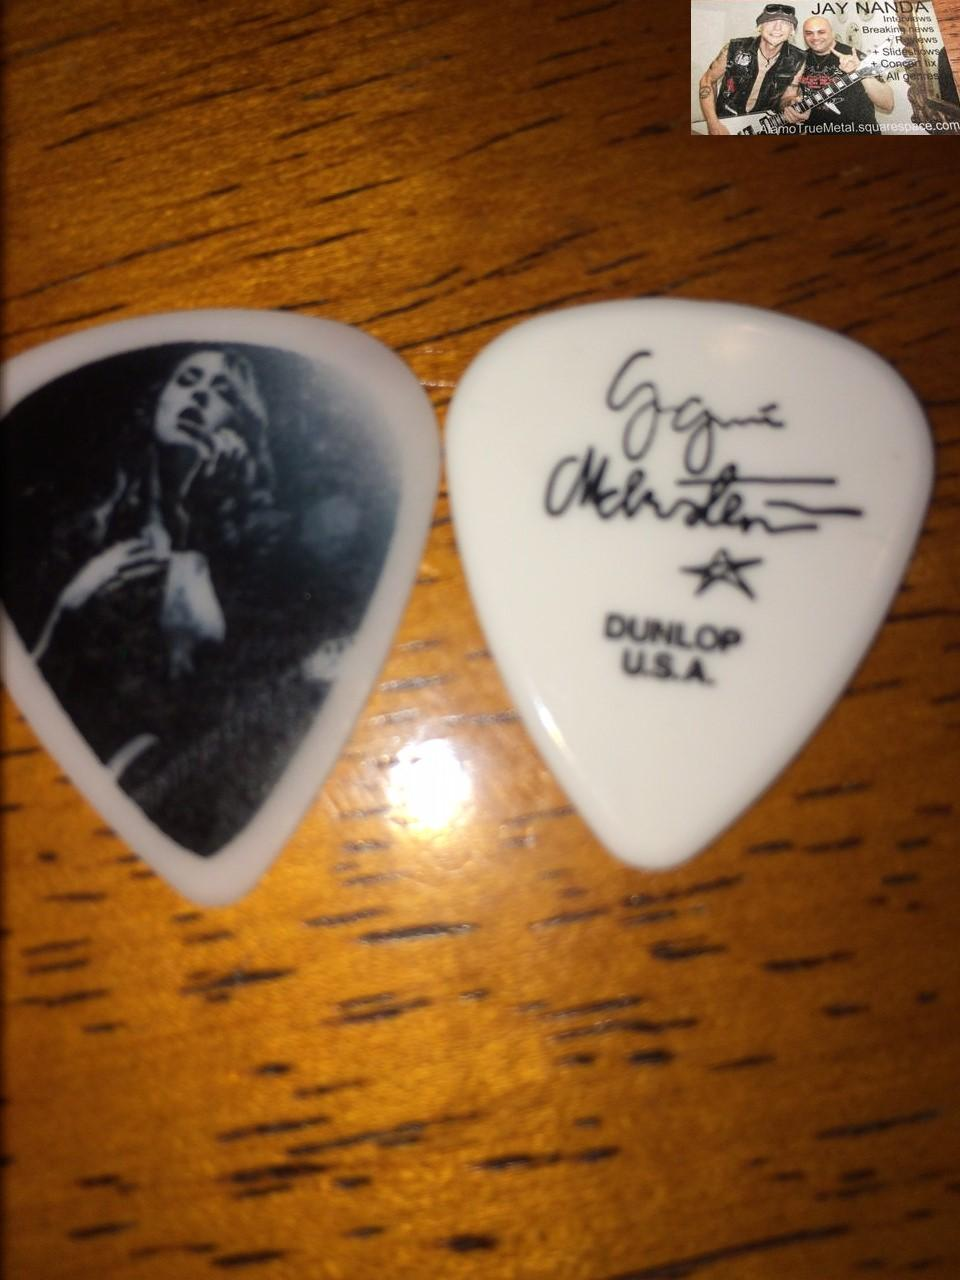 Guitar pics of Paralandra singer/guitarist Casandra Carson (left) and of the maestro Yngwie Malmsteen